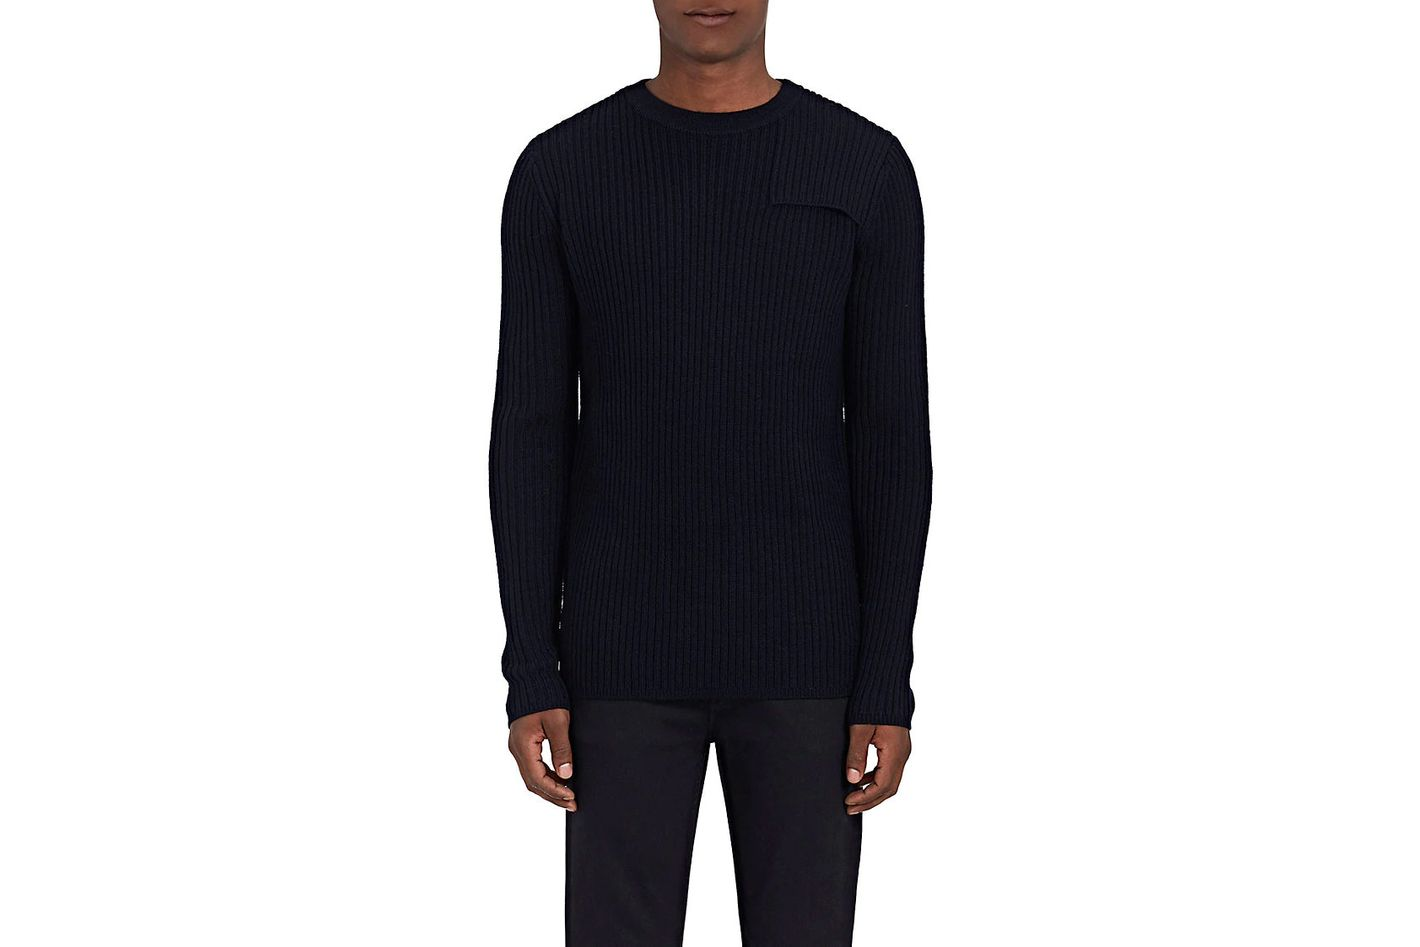 Acne Studios Julius Wool Sweater